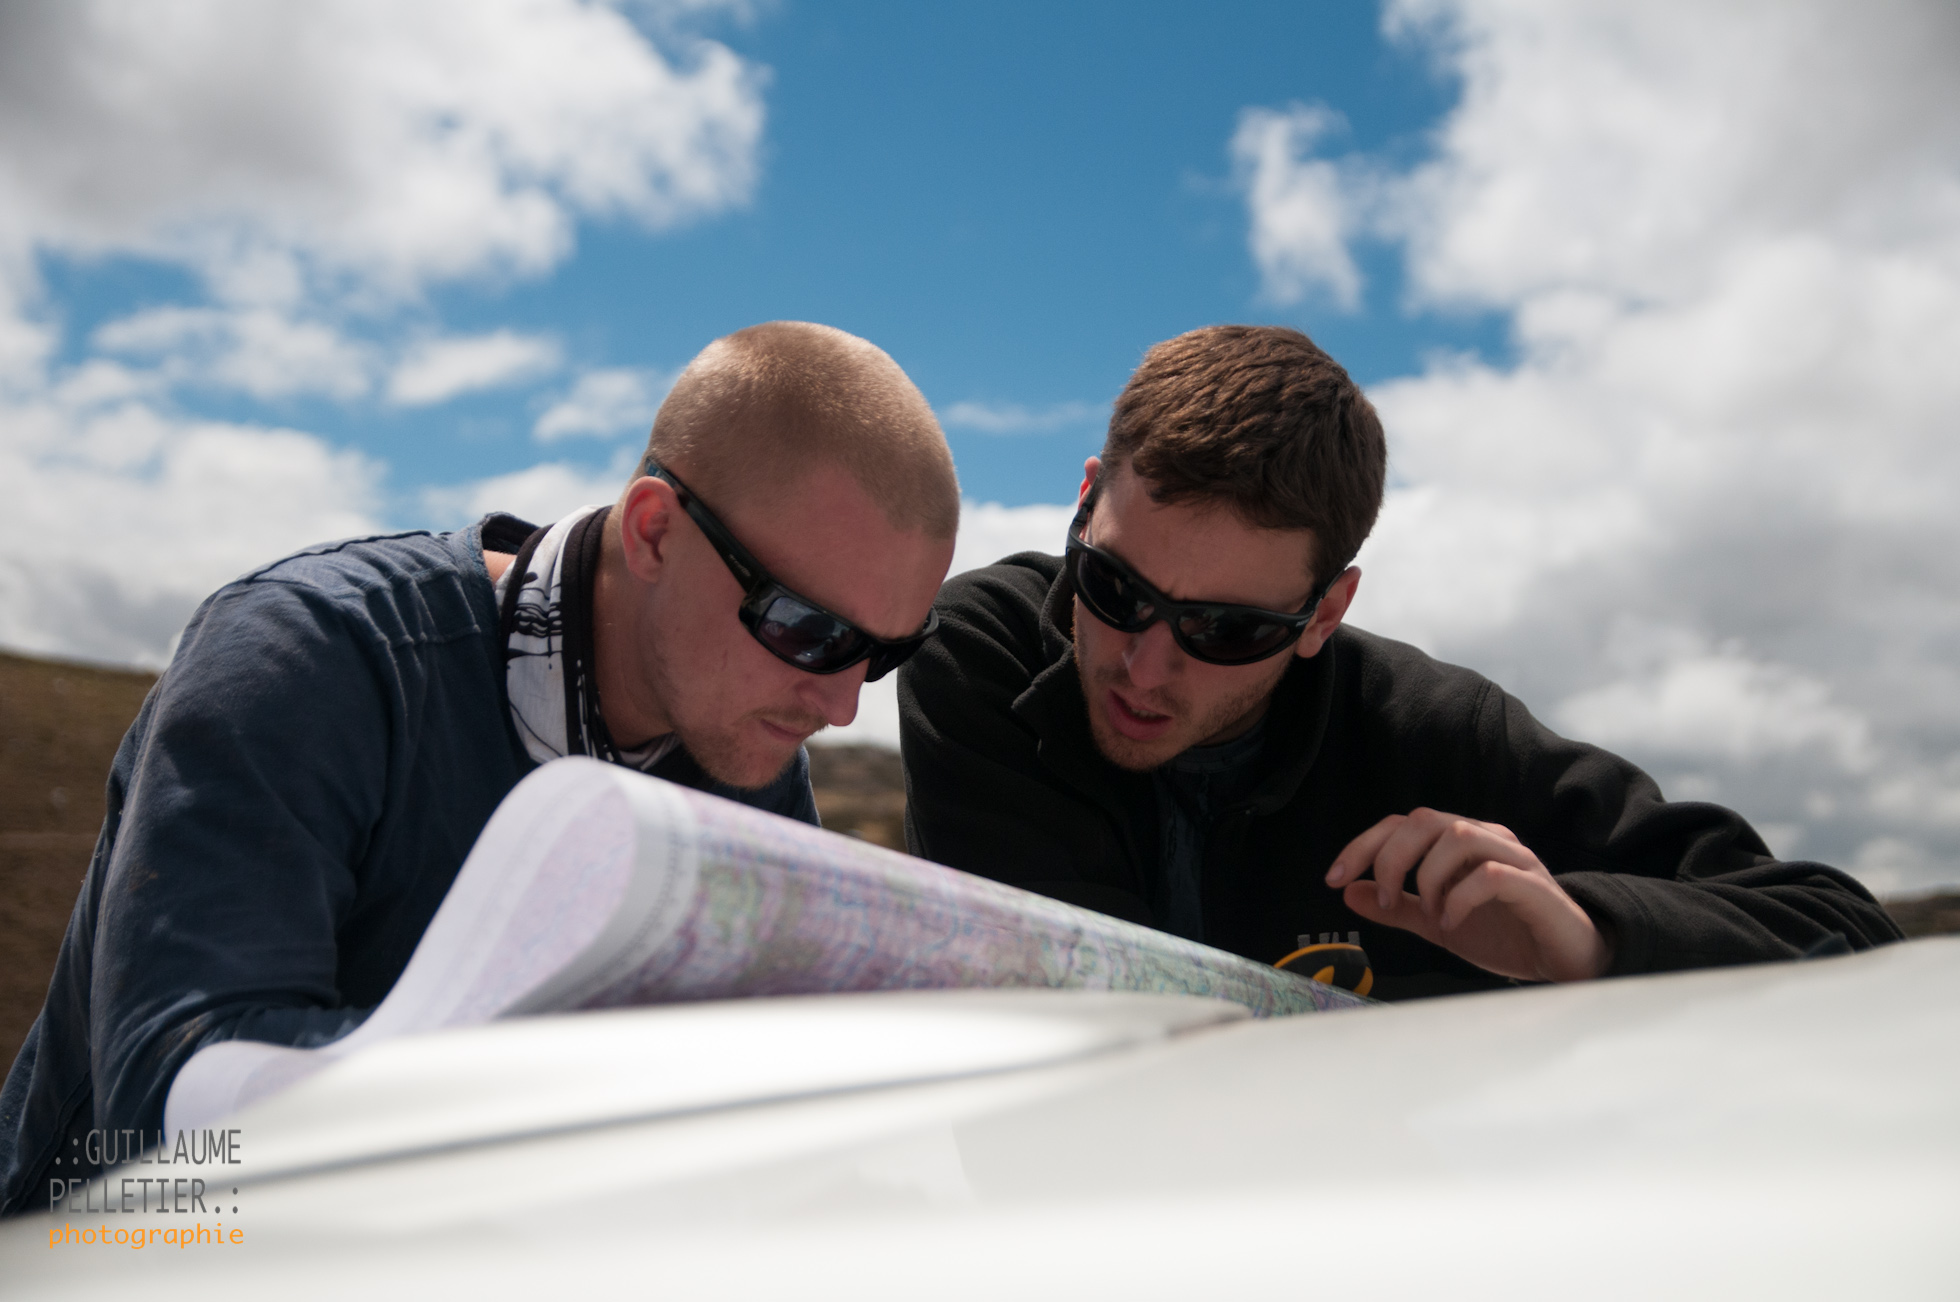 Andy and David poring over maps. Photo Guillaume Pelletier